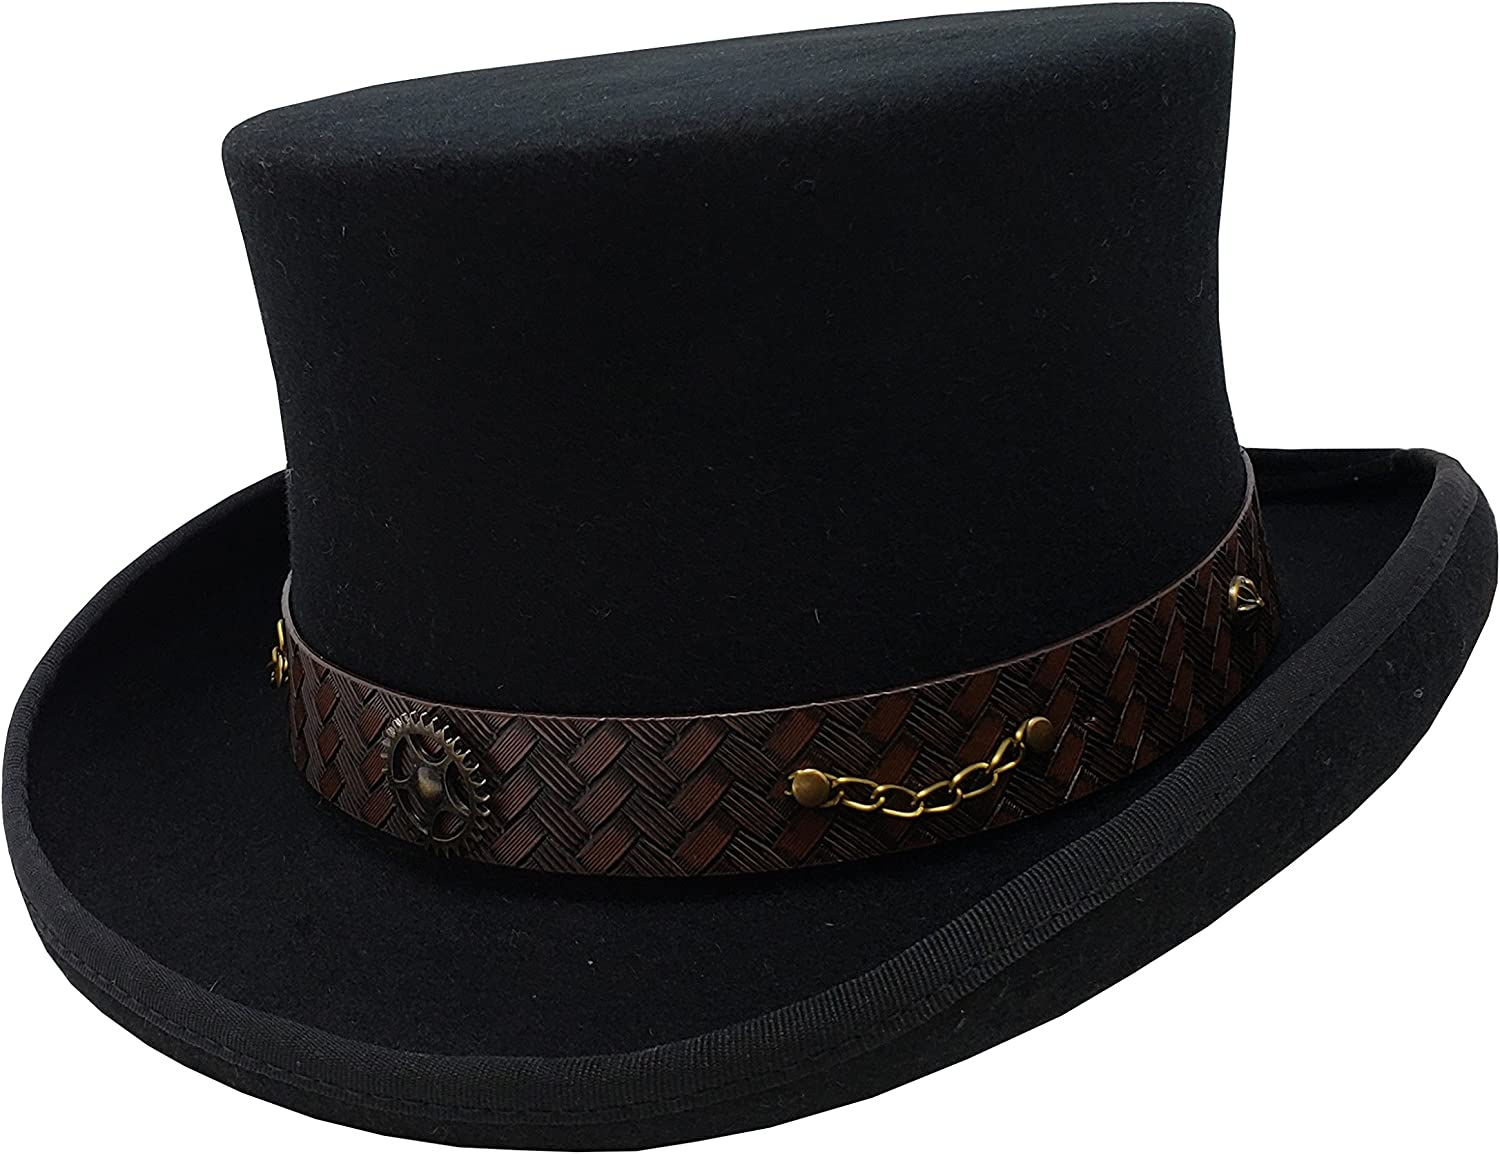 100% Wool Victorian Some reservation Western Steampunk Leath with Top Costume Hat latest